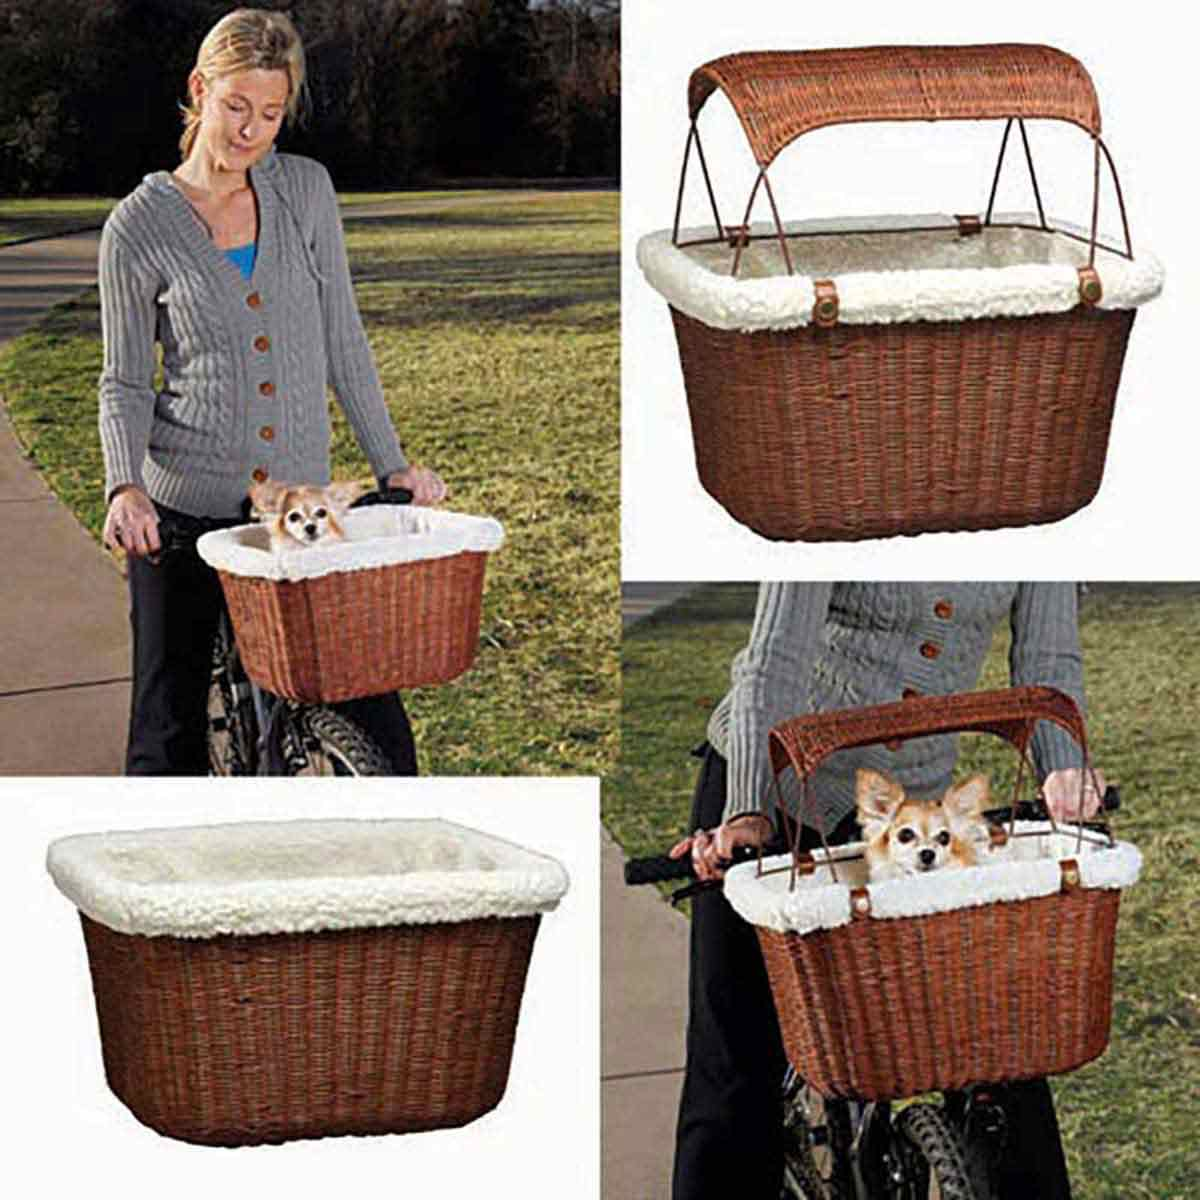 Solvit Tagalong Wicker Bicycle Basket for Dogs or Cats